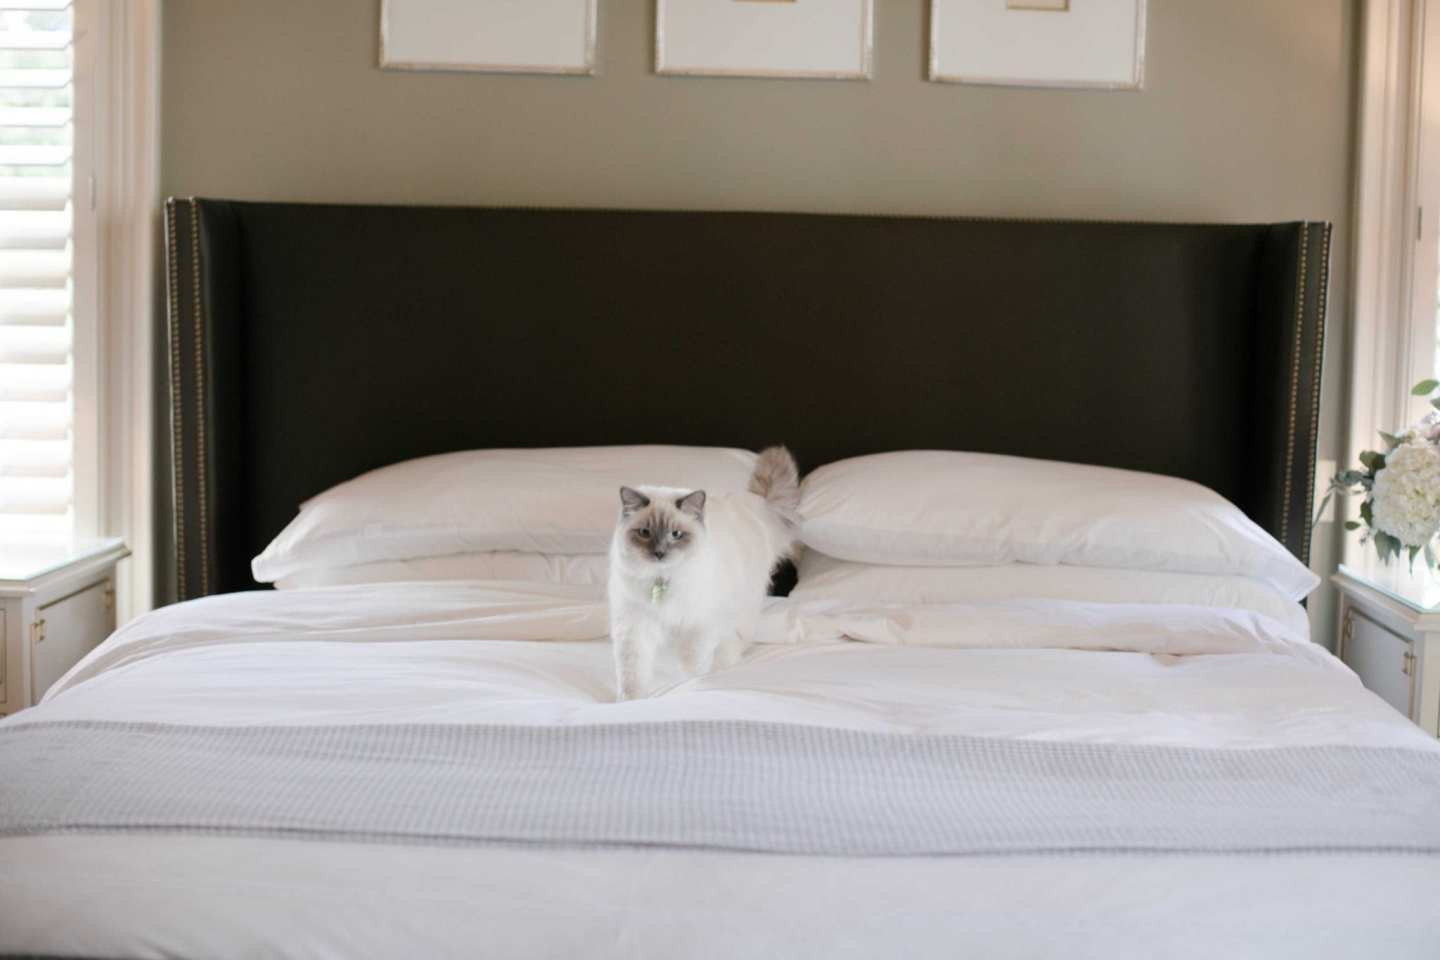 All white bedding with percale sheets. Ragdoll kitten! on white bed with brown silk headboard and gray bed blanket.